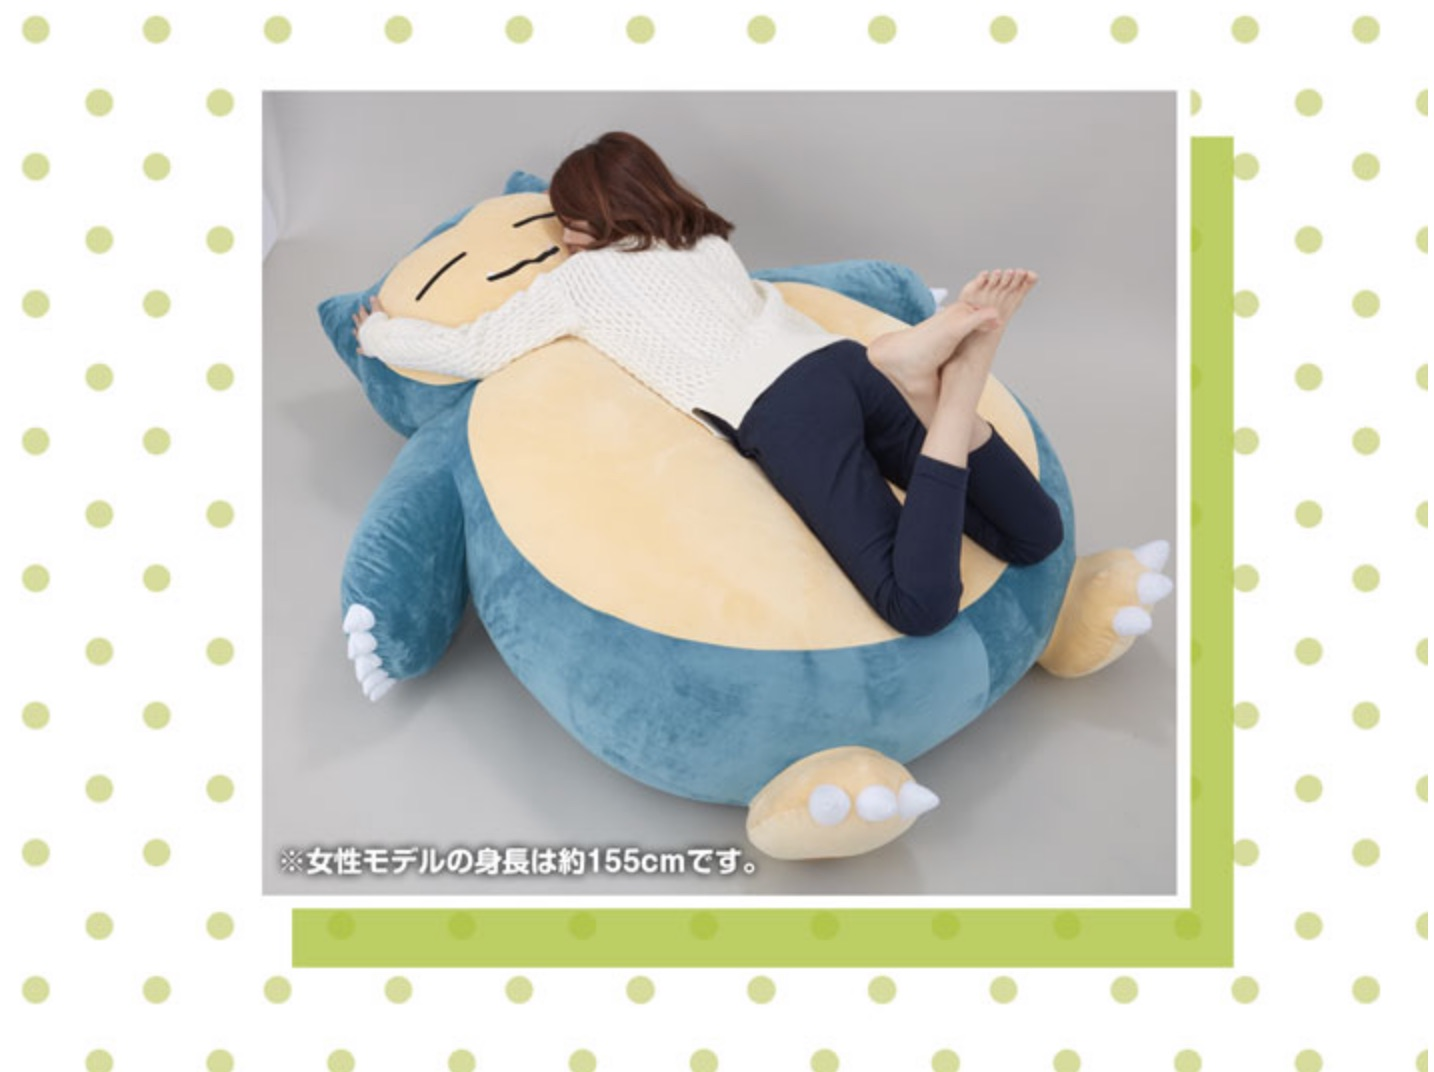 This giant Pokémon cushion is the stuff of childhood dreams